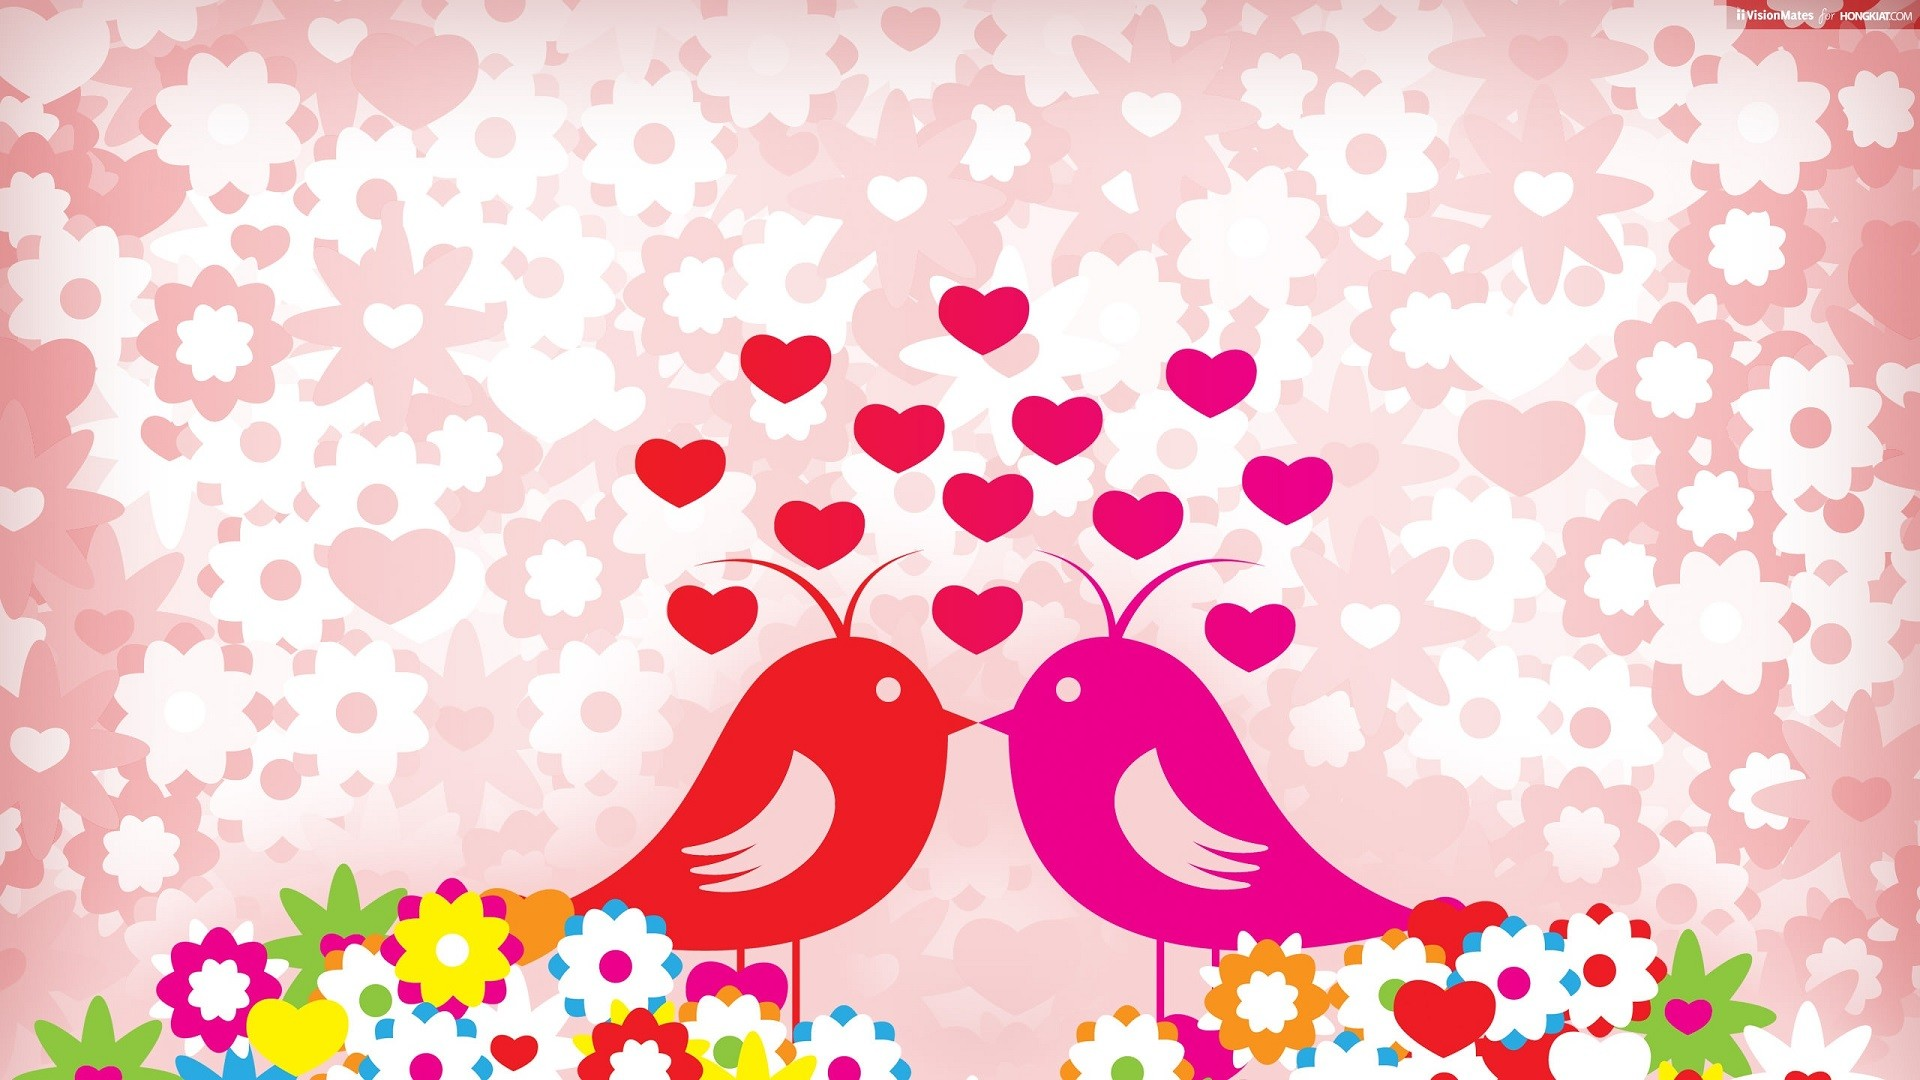 Pink Love Wallpaper: Pink Love Wallpaper (64+ Images